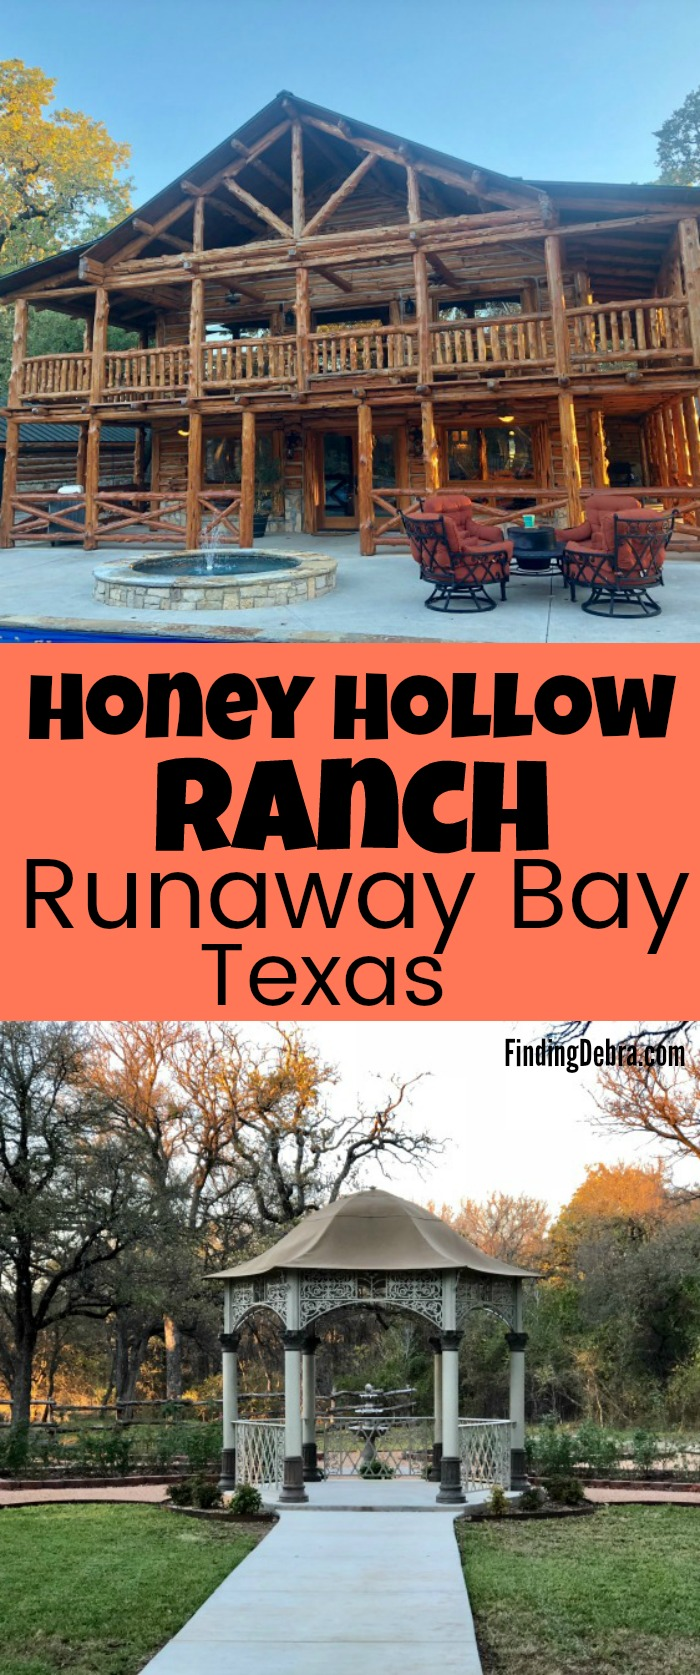 Honey Hollow Ranch in Runaway Bay Texas - perfect rustic wedding venue or corporate retreat getaway